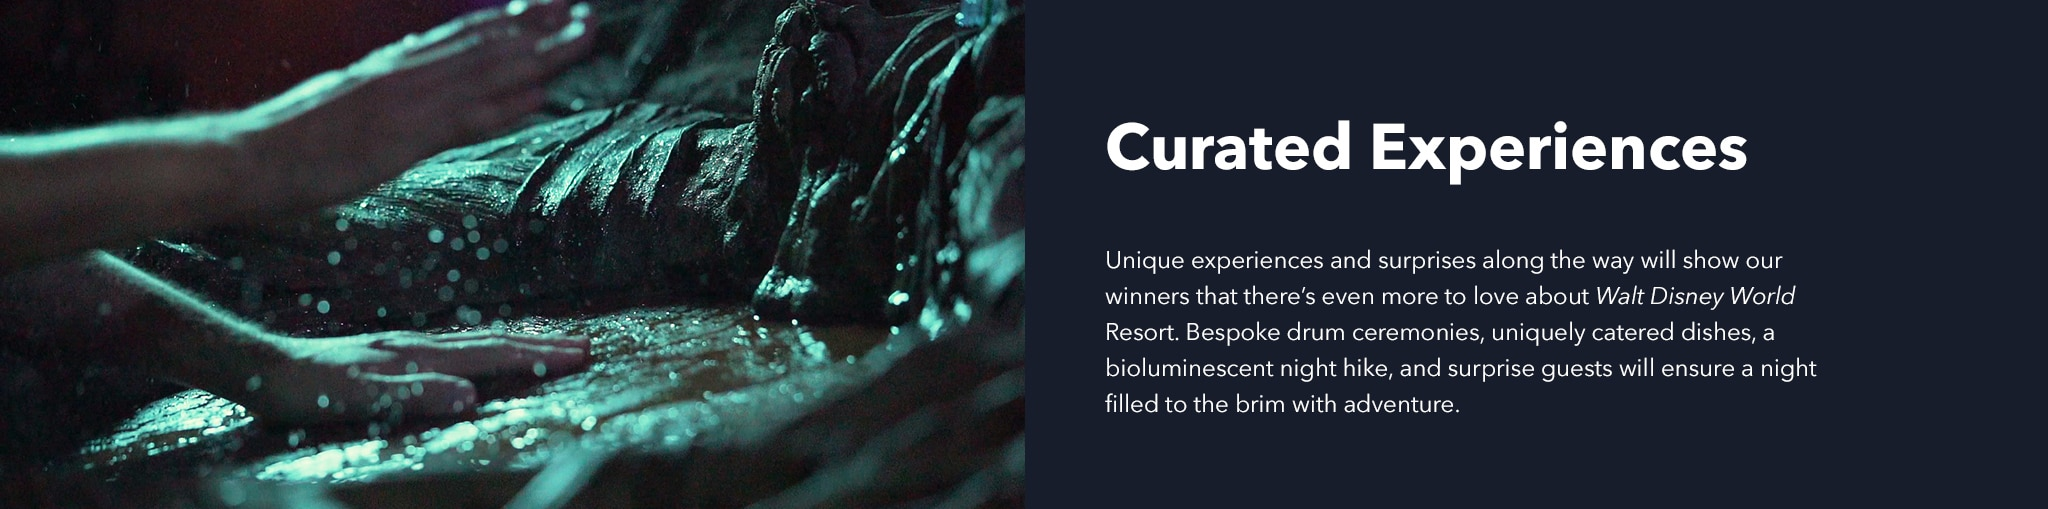 Curated Experiences. Unique experiences and surprises along the way will show our  winners that there's even more to love about Walt Disney World Resort. Bespoke drum ceremonies, uniquely catered dishes, a bioluminescent night hike, and surprise guests will ensure a night filled to the brim with adventure.